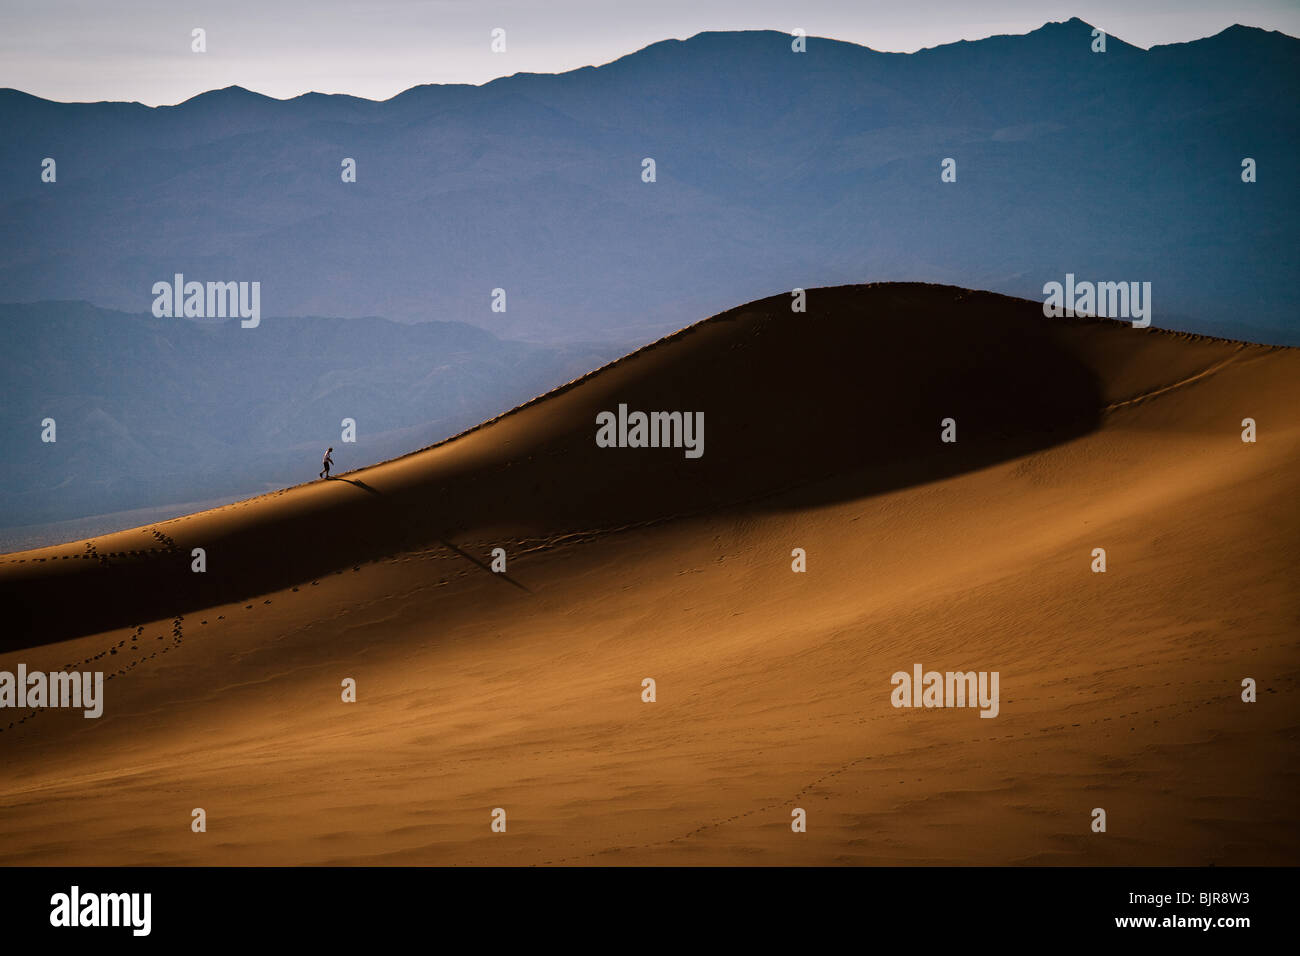 Sand dunes at Stovepipe Wells in Death Valley National Park, California, USA.  - Stock Image